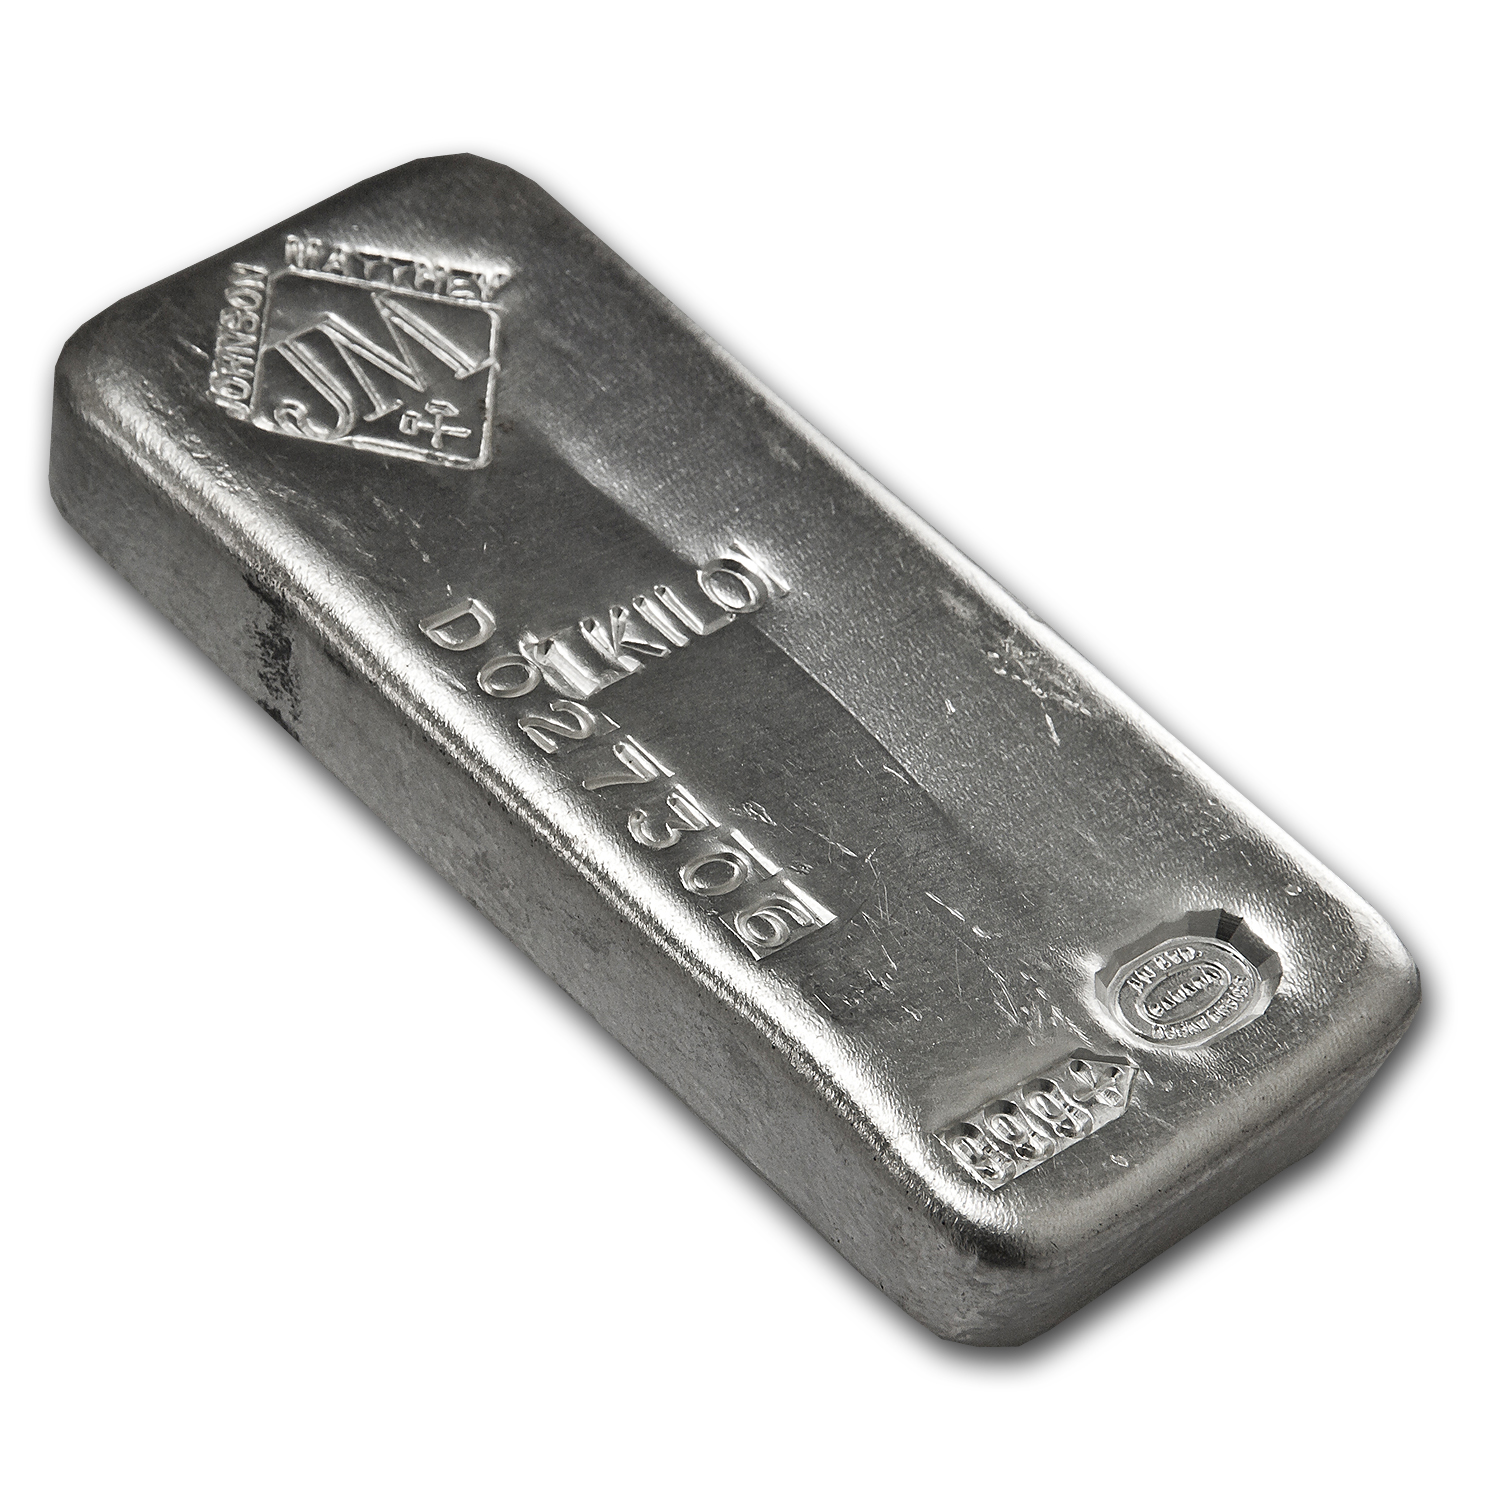 1 Kilo Silver Bars - Johnson Matthey (Serial #/Canada)